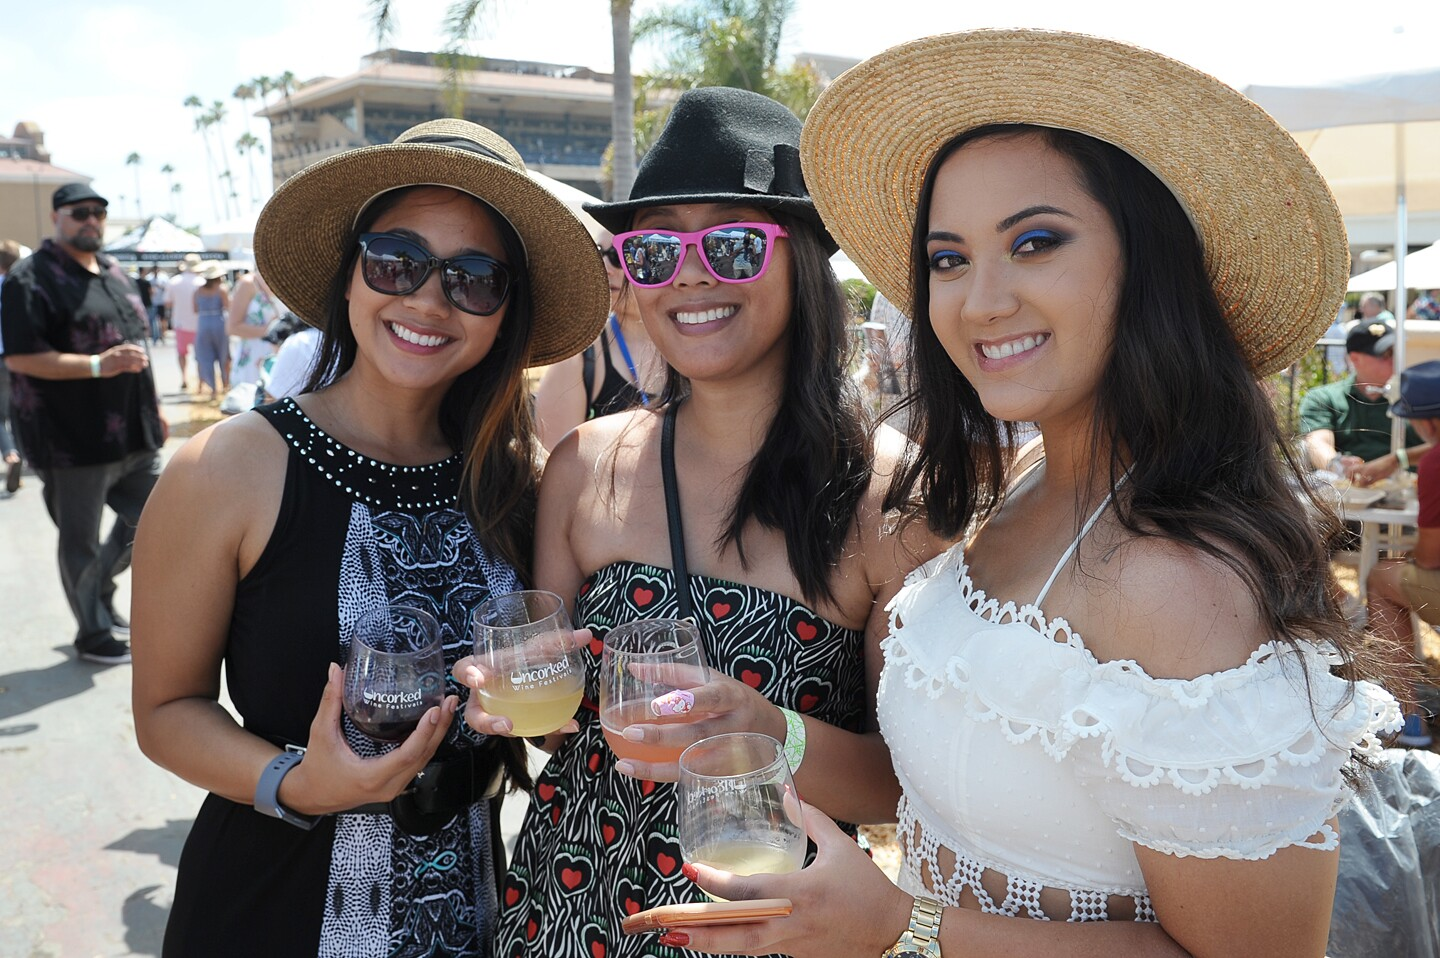 Guests at Uncorked: Del Mar Wine Festival cooled off with unlimited wine tastings at the Del Mar Racetrack on Saturday, July 27, 2019.